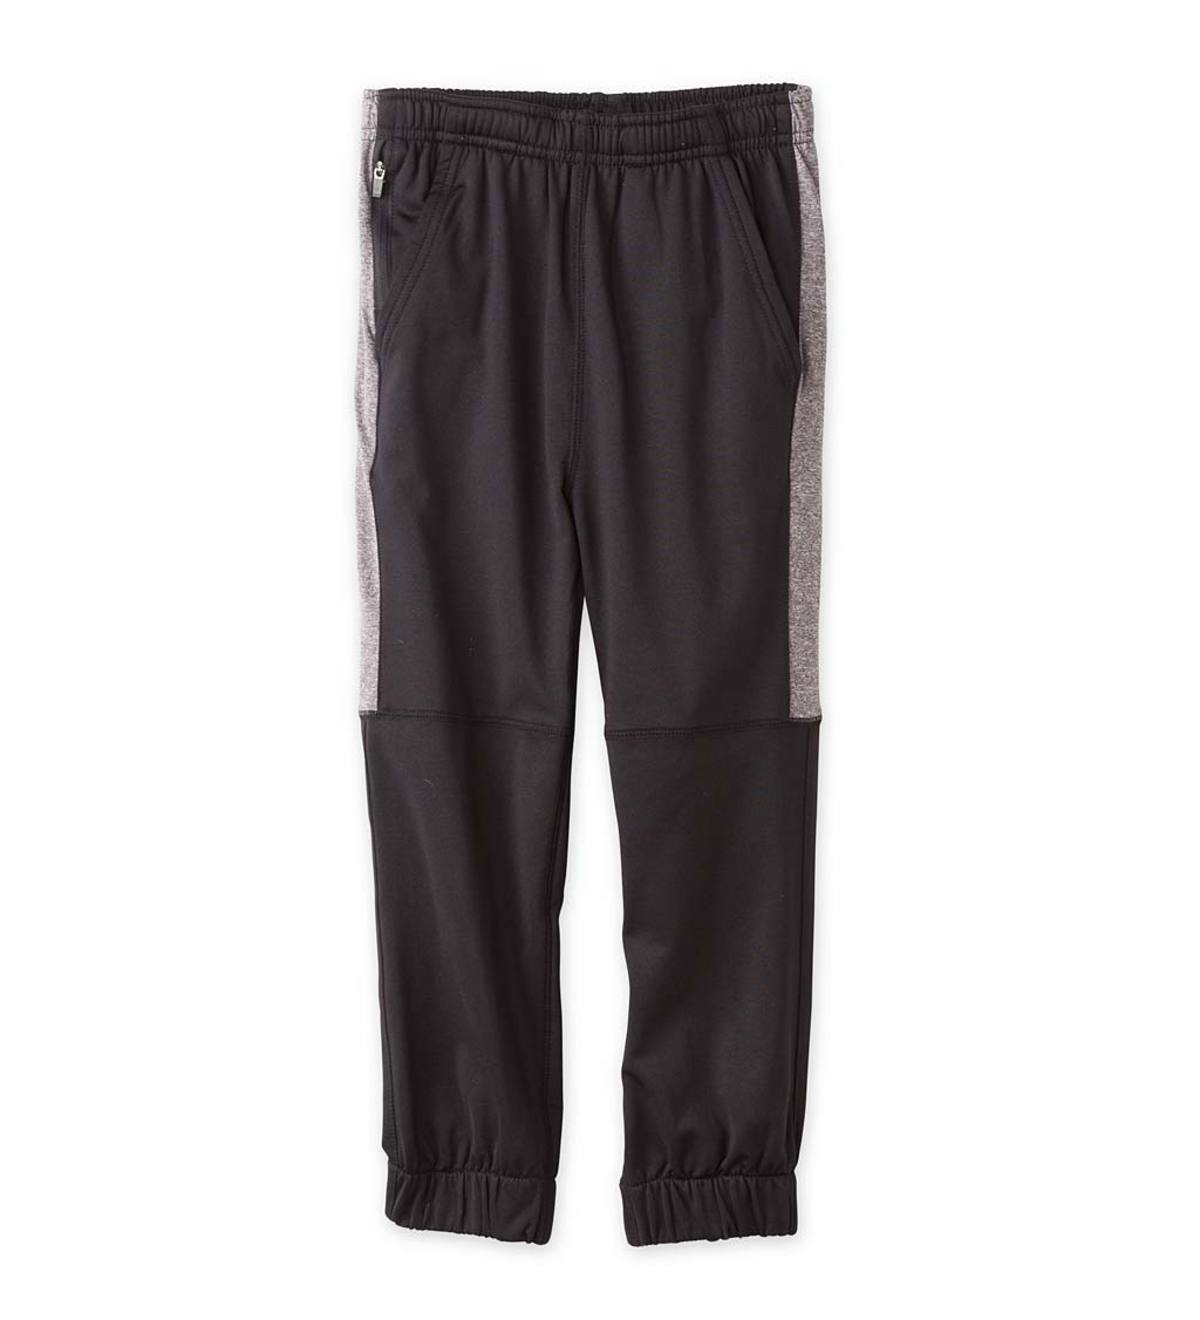 Stripe Performance Jogger Pants - Black - 2T